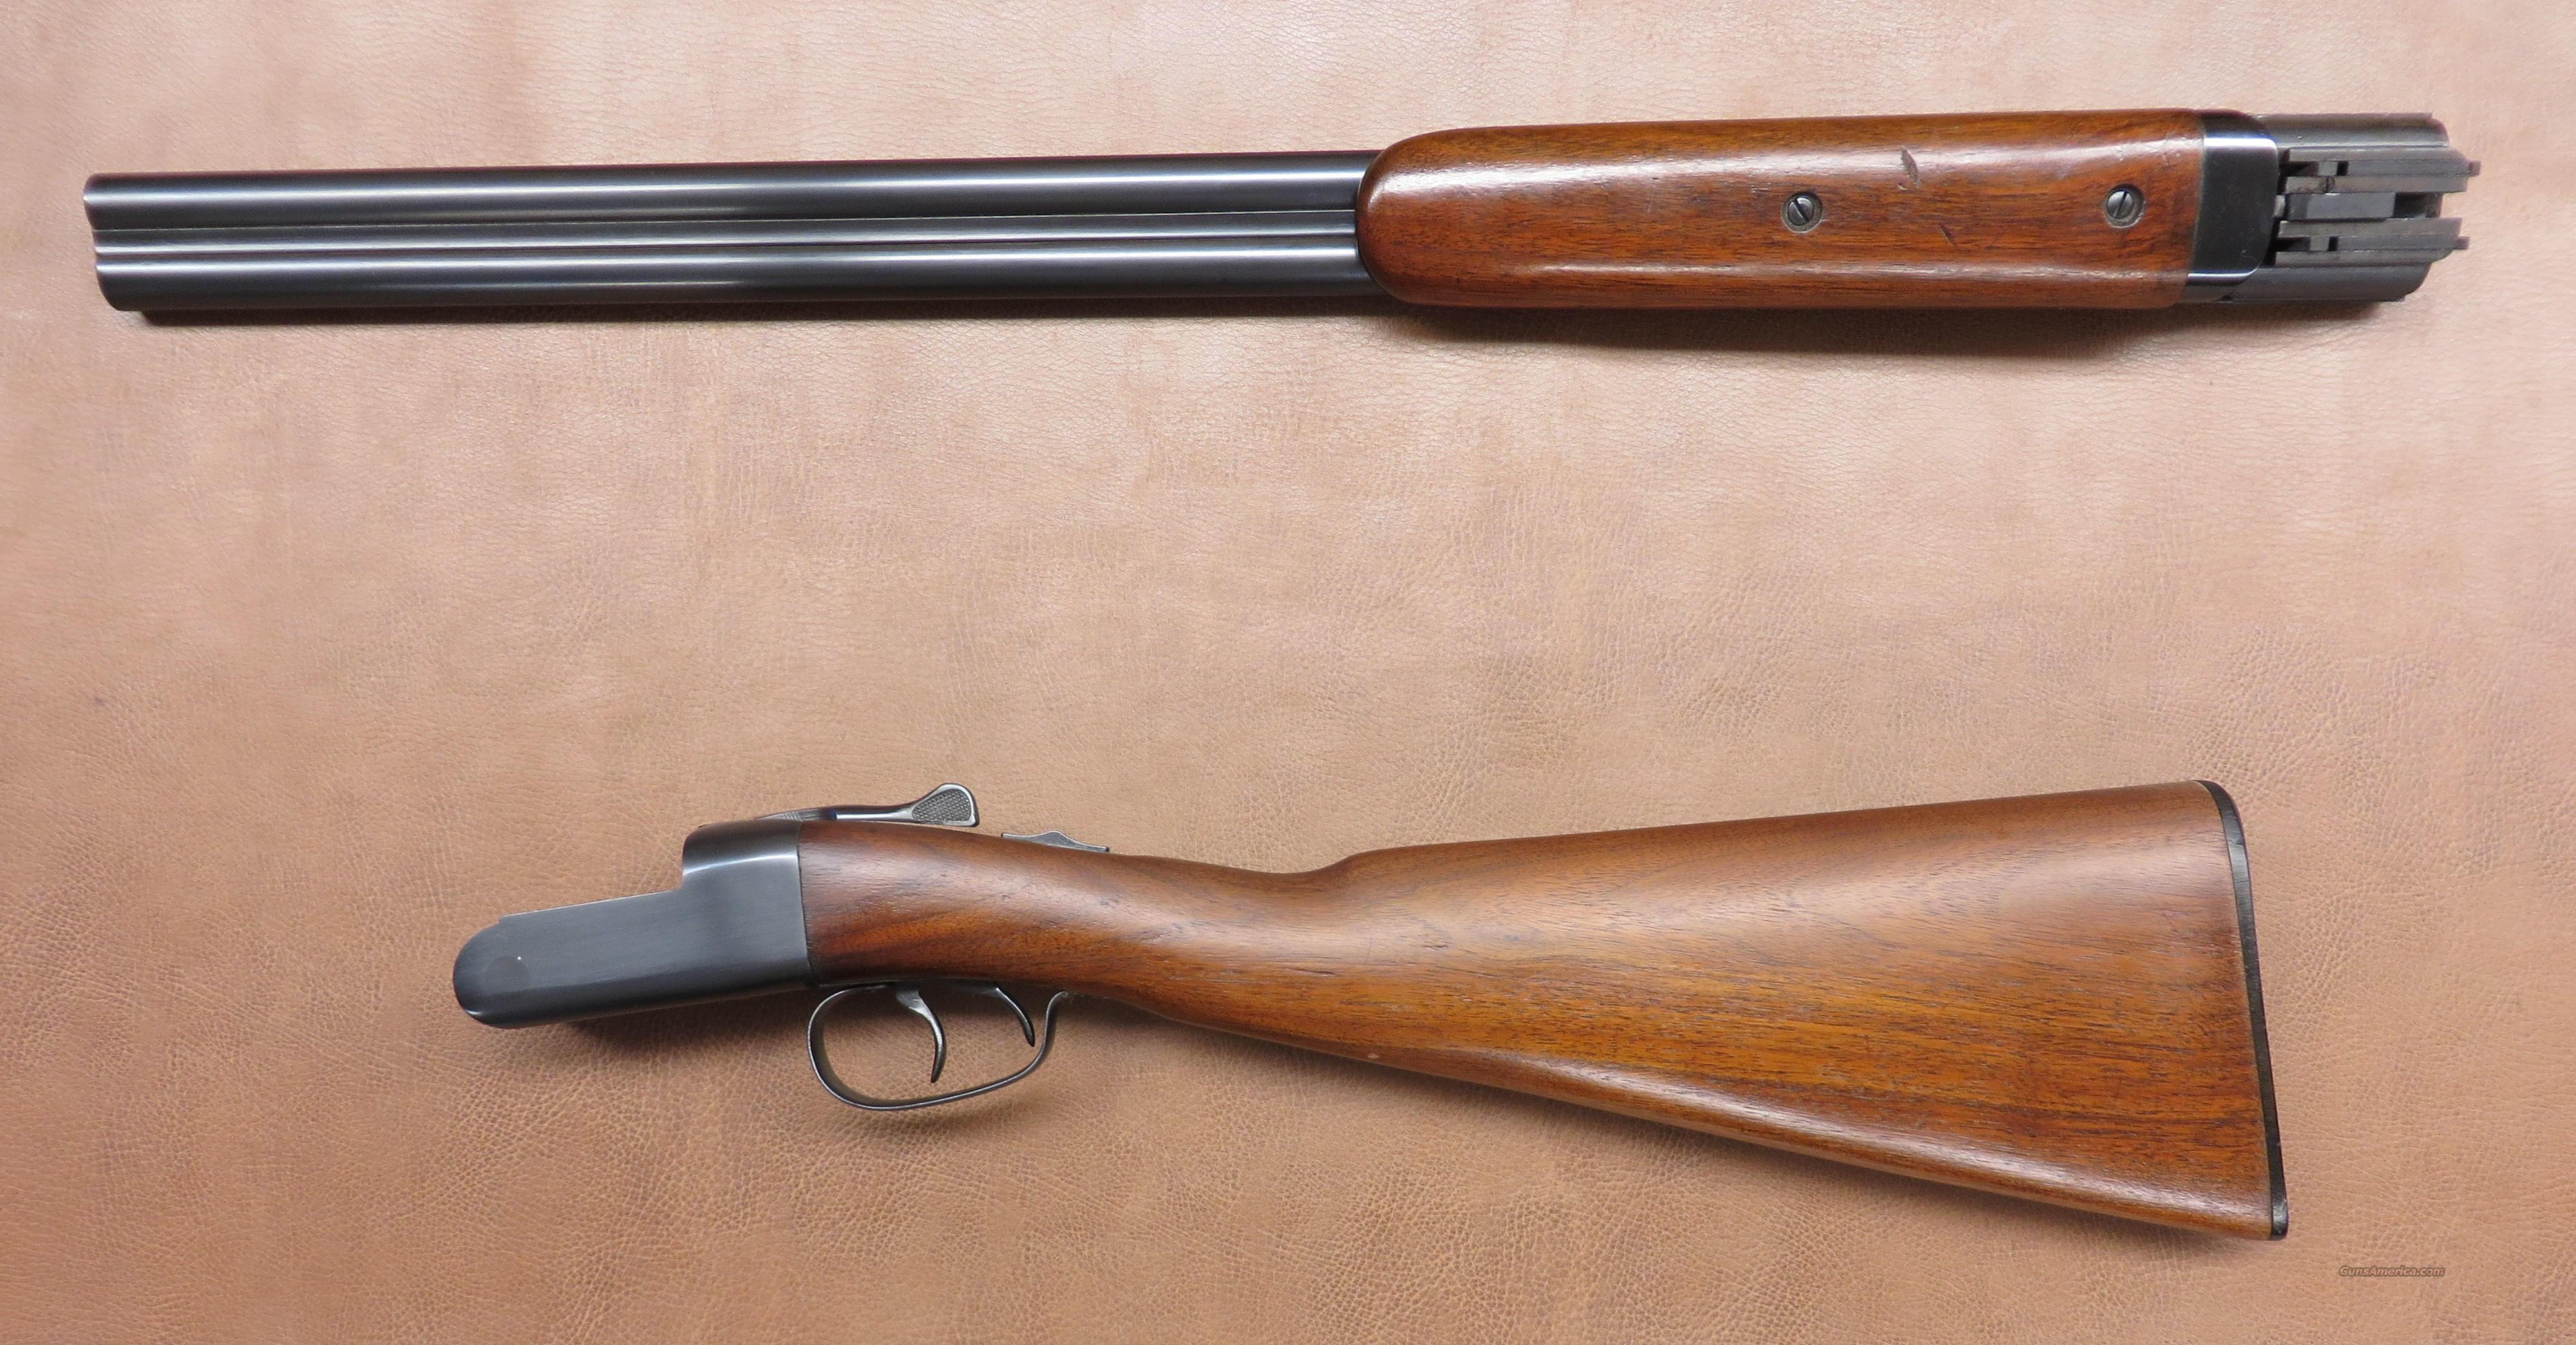 Winchester model 24 for sale for Mobel 24 gartenmobel